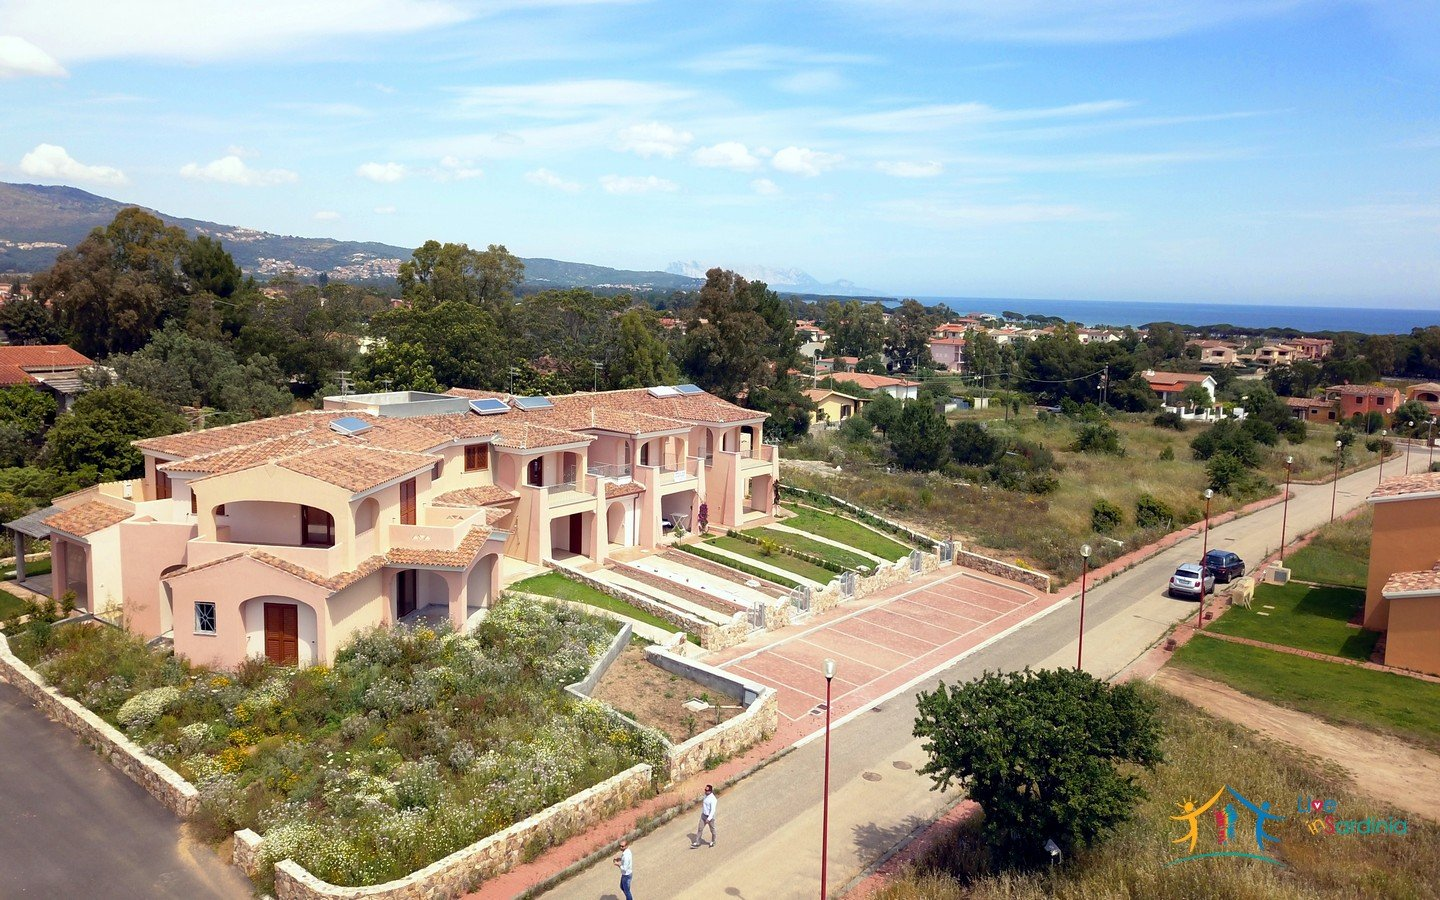 Sea View Apartment for Sale in Delightful Budoni, North East Sardinia